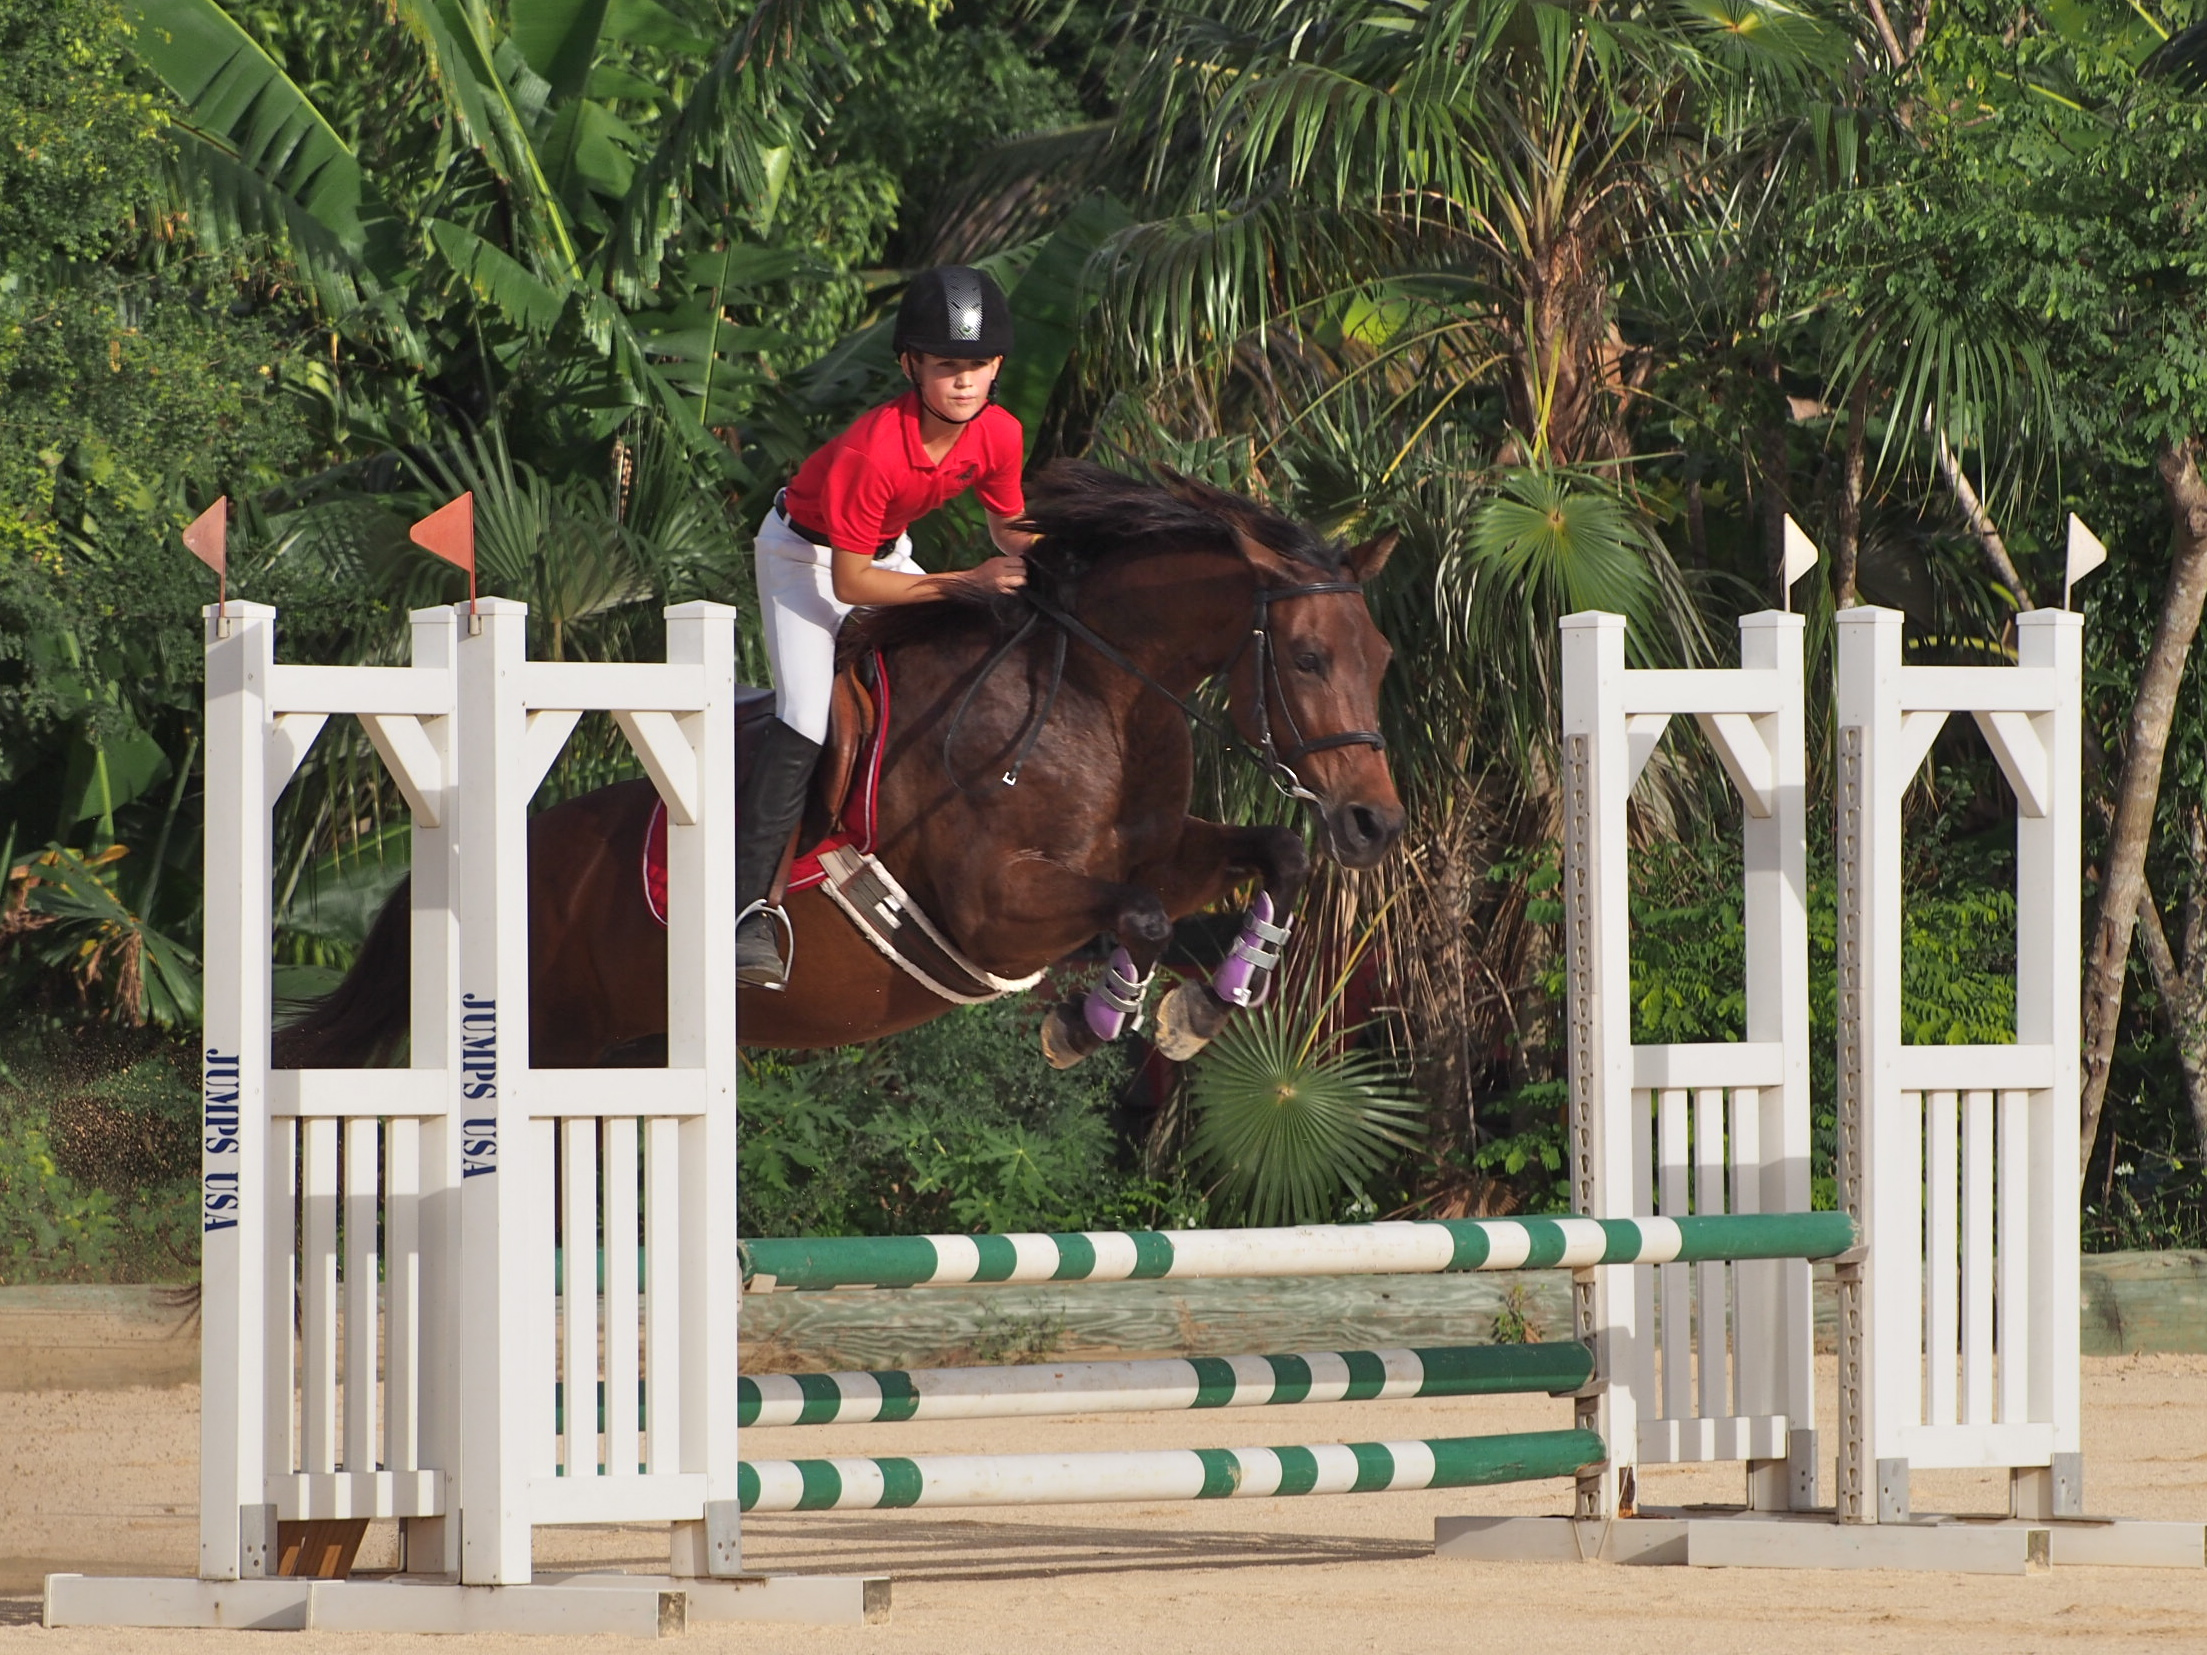 trials-for-the-cea-jsjc-in-cayman-national-jumping-show